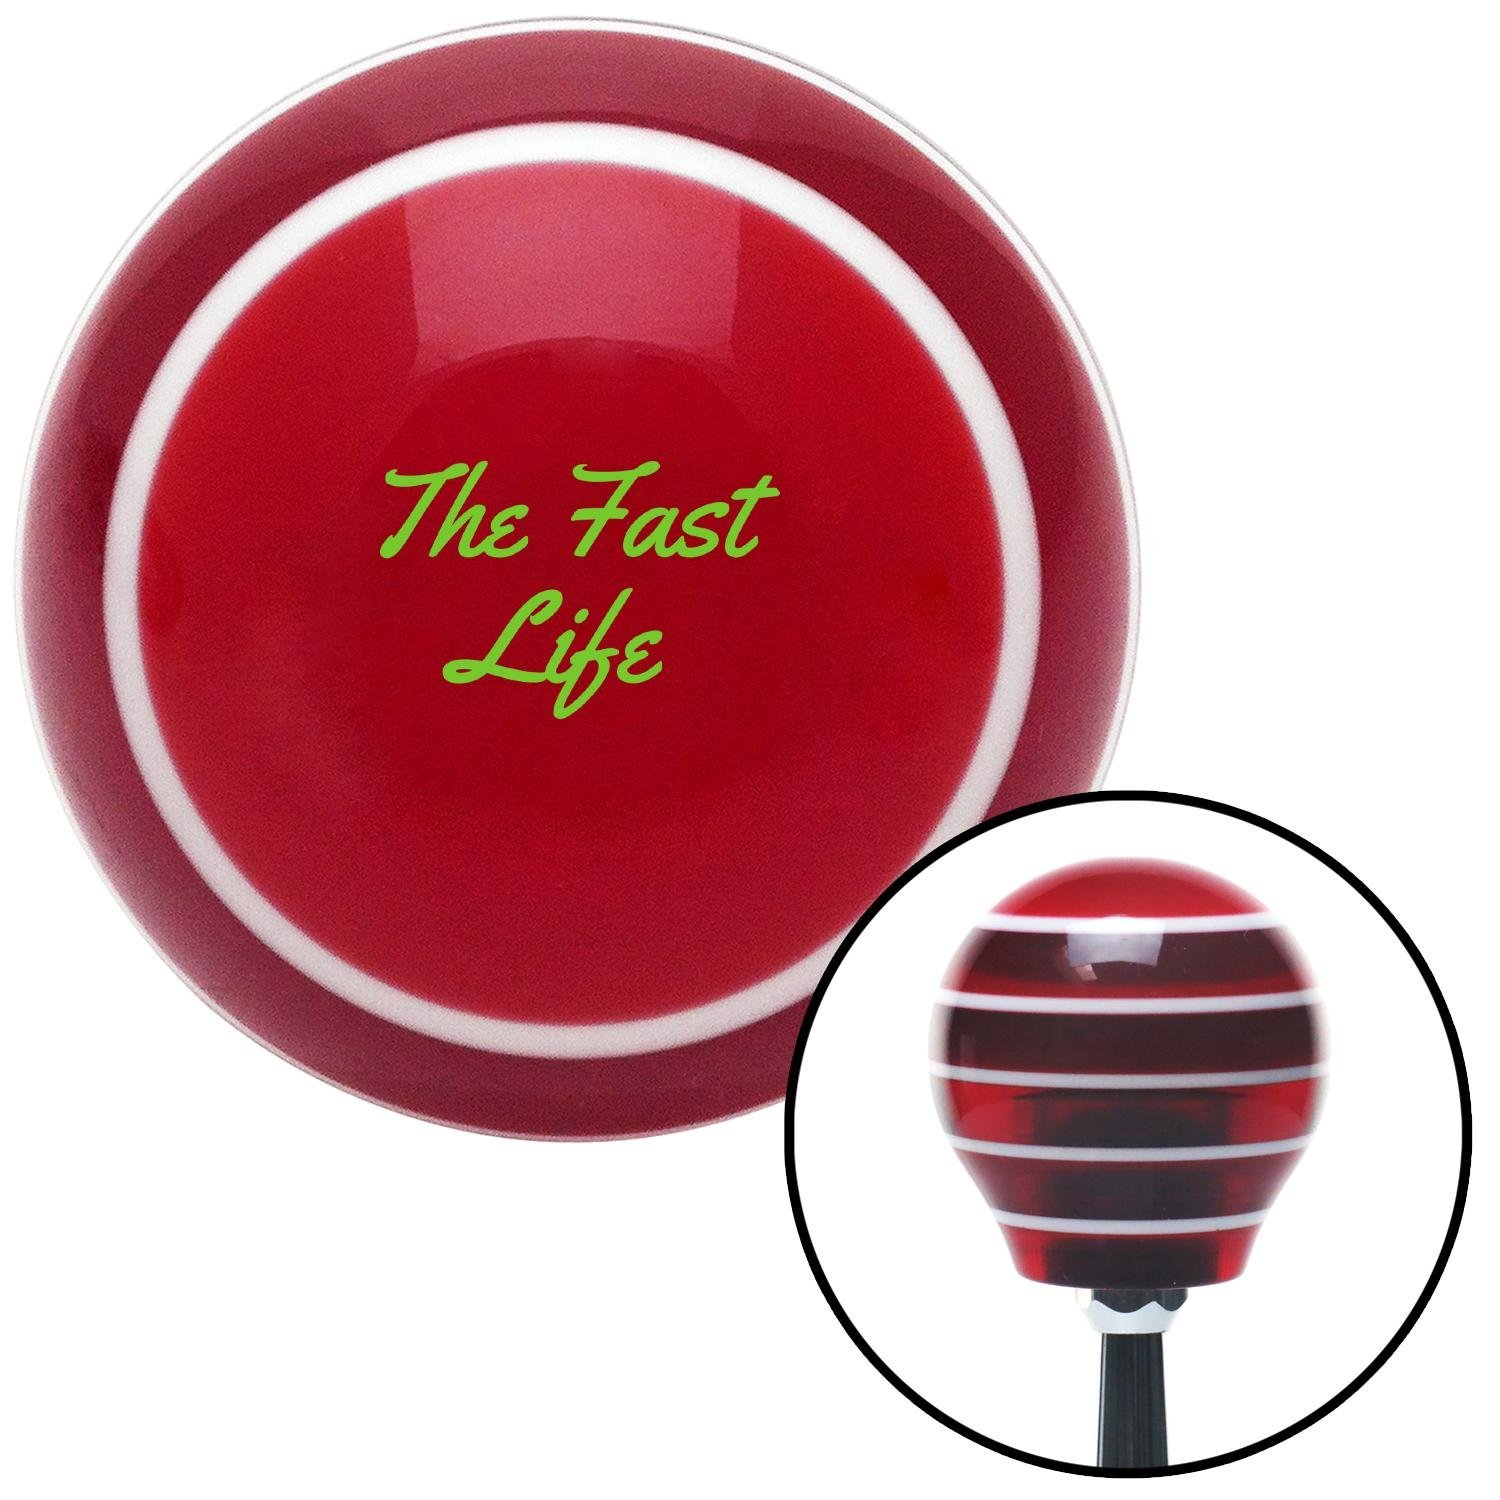 American Shifter 273920 Shift Knob Green The Fast Life Red Stripe with M16 x 1.5 Insert